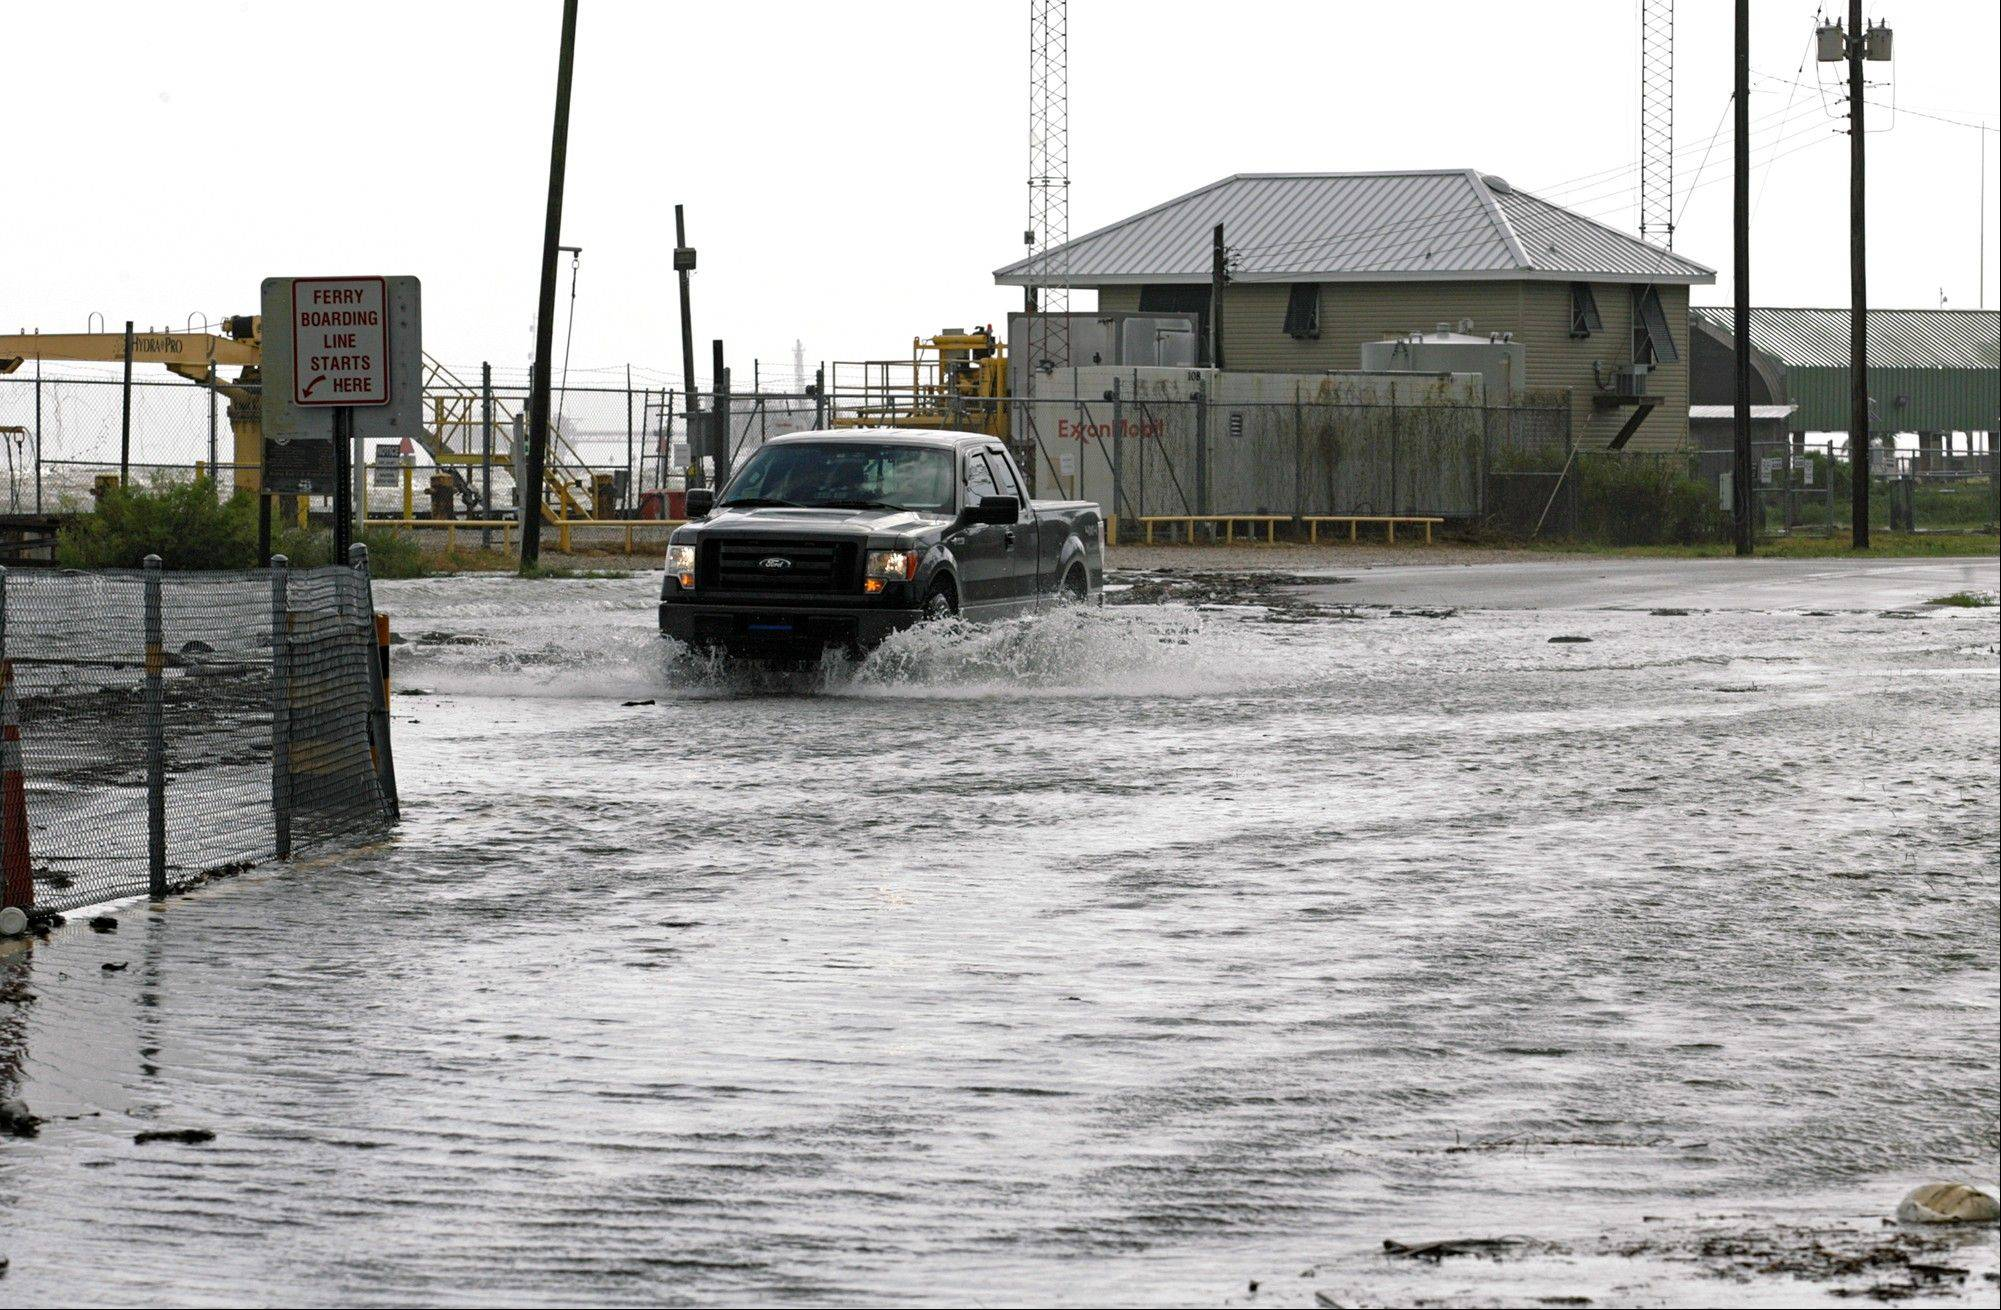 A truck makes its way along flooded Bienville Blvd. at the Dauphin Island Ferry landing Tuesday in Dauphin Island, Ala., as residents prepare for the landfall of Hurricane Isaac along the Gulf Coast.